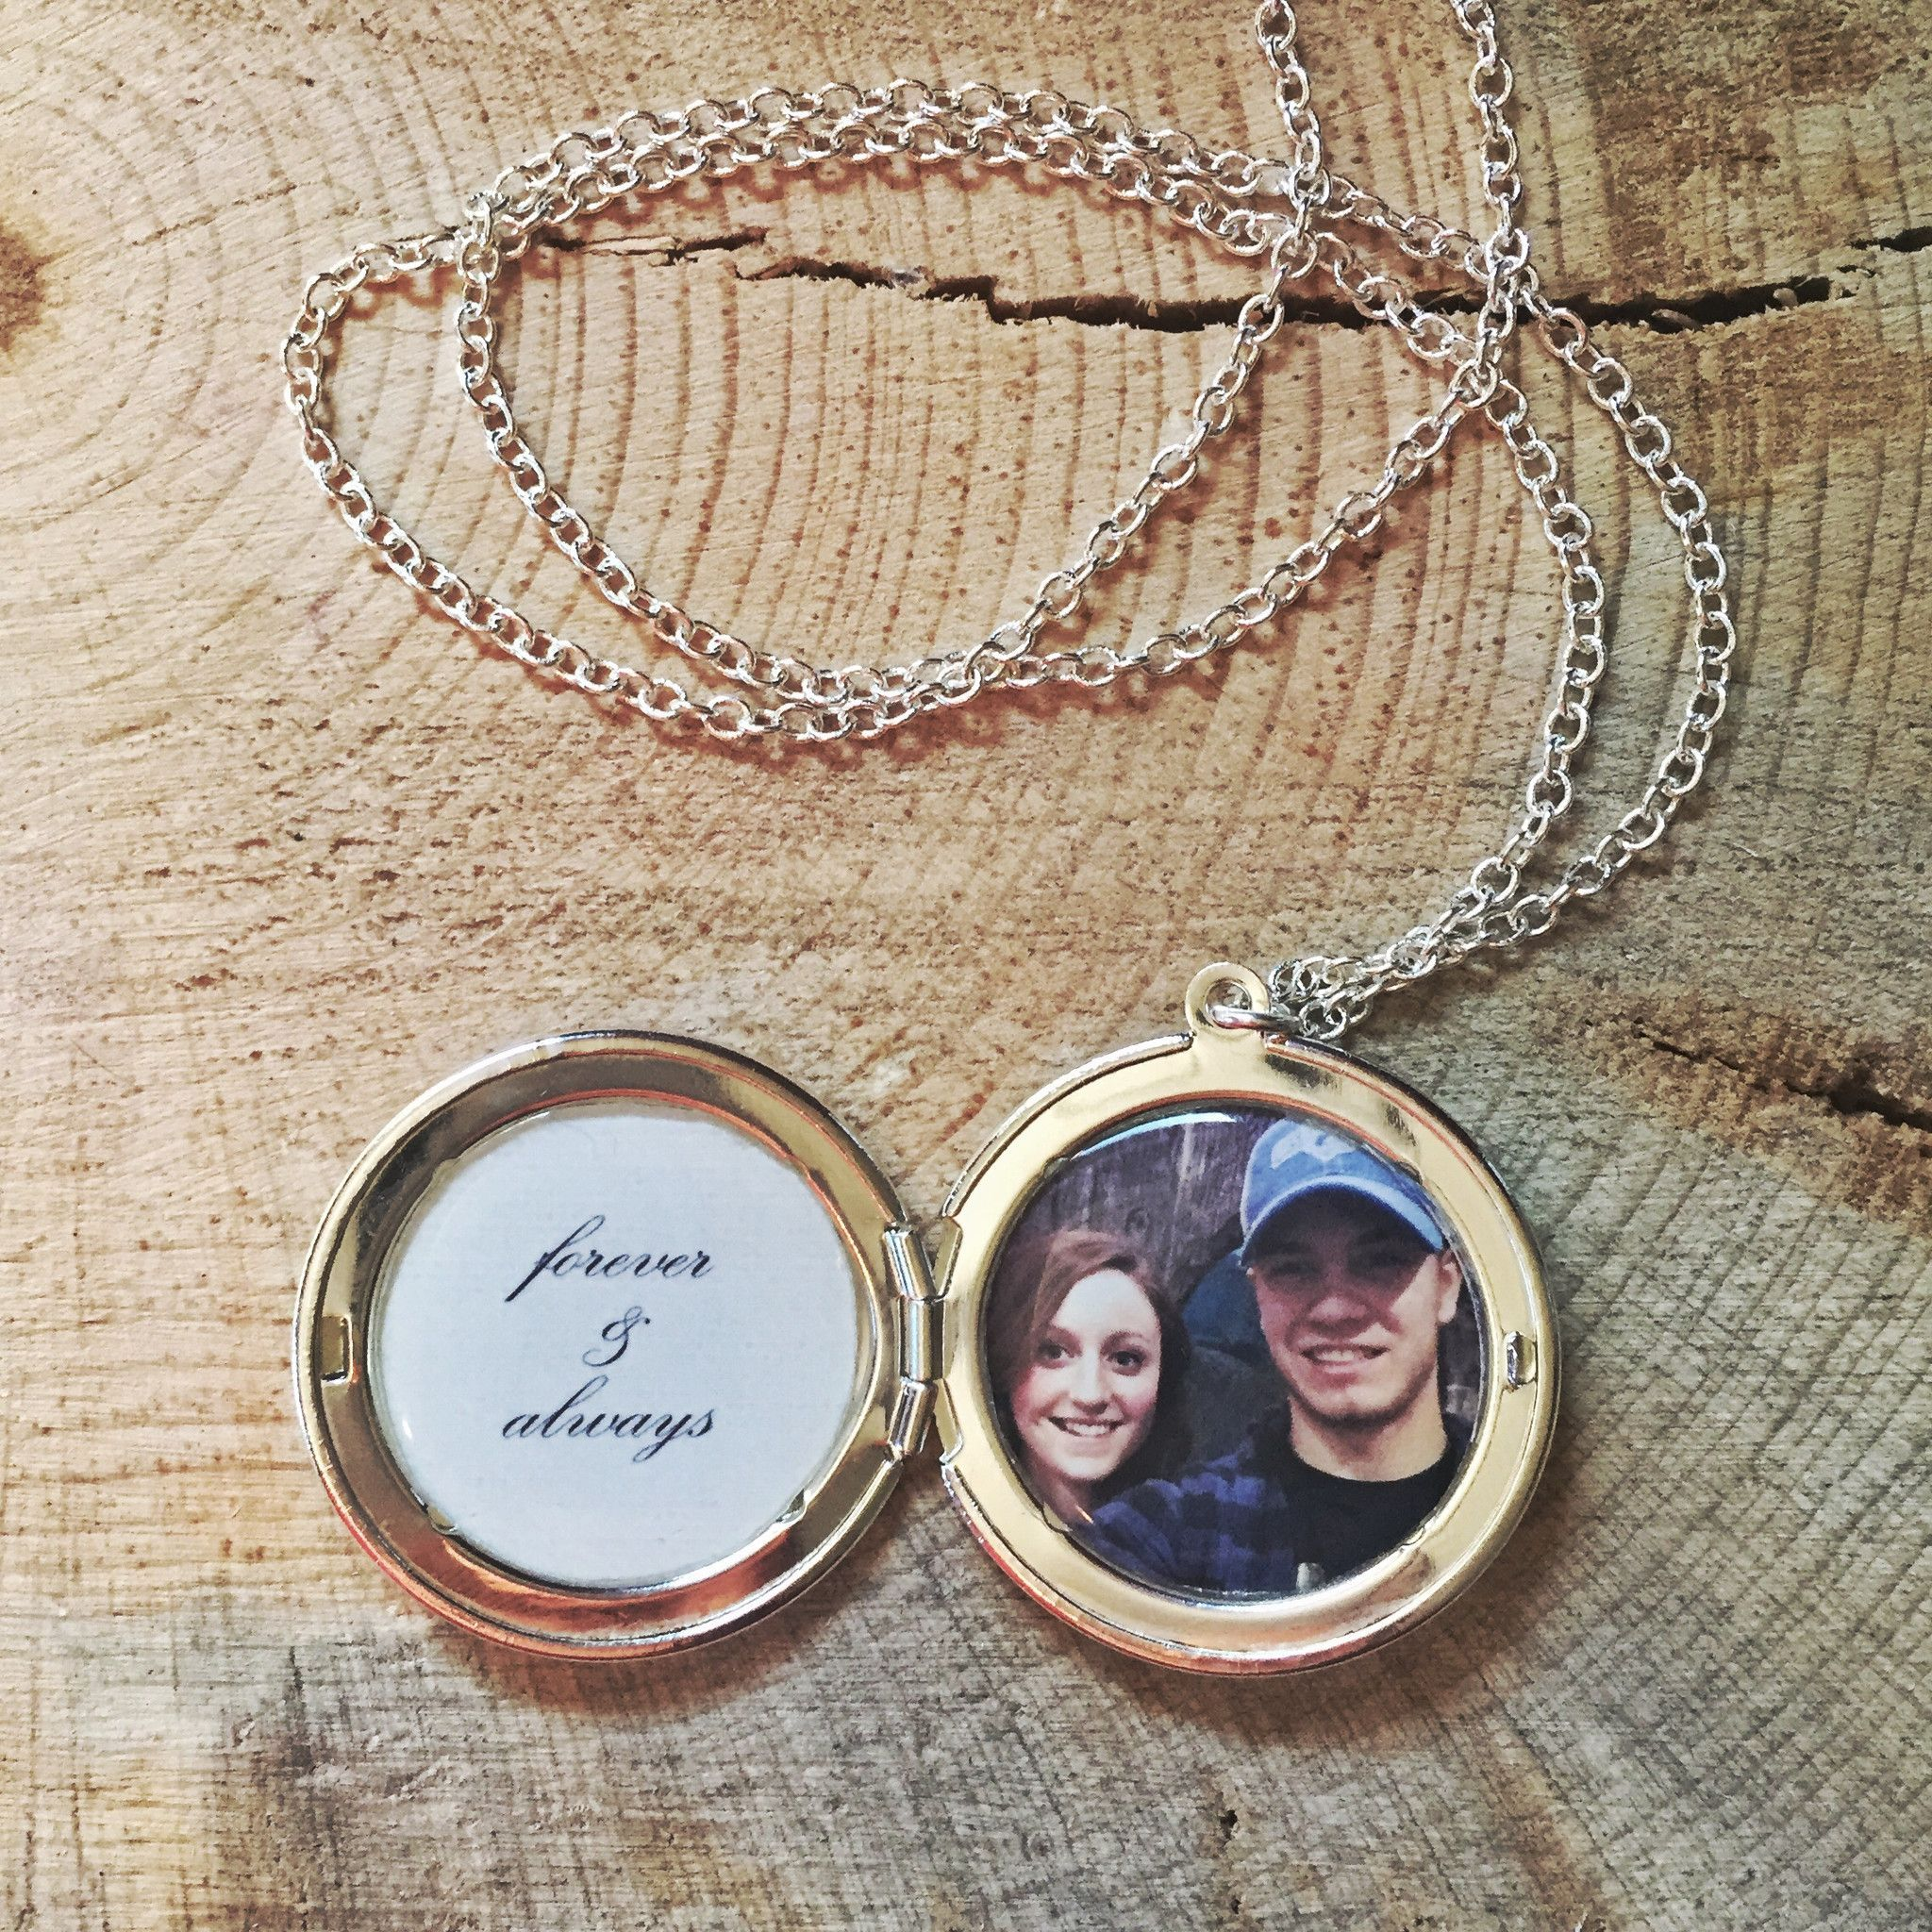 pin lockets photo necklace locket secret custom message